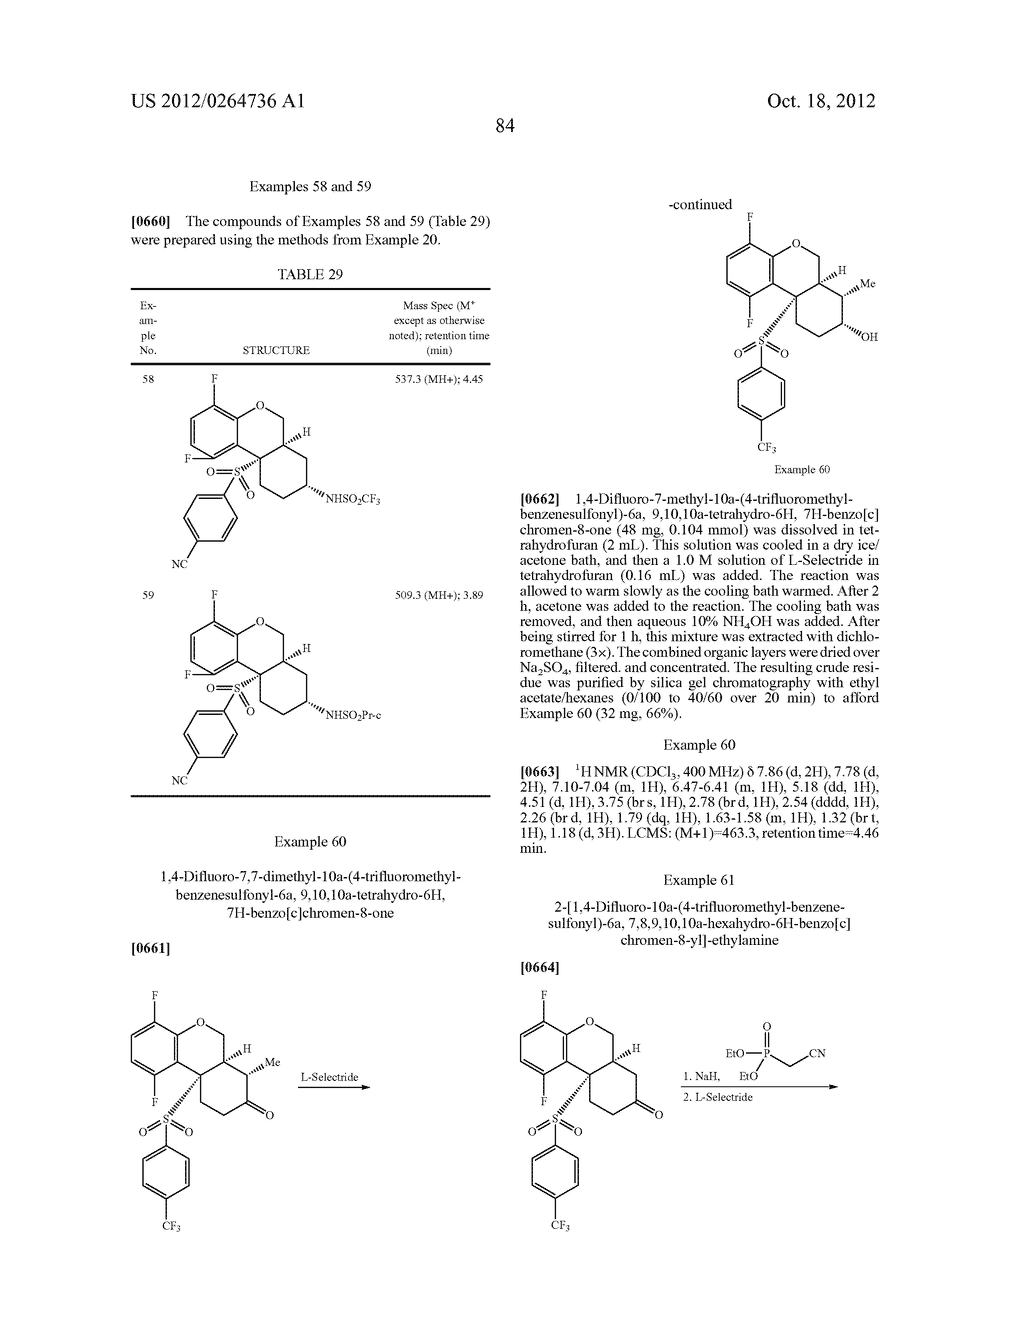 BENZENESULFONYL-CHROMANE, THIOCHROMANE, TETRAHYDRONAPHTHALENE AND RELATED     GAMMA SECRETASE INHIBITORS - diagram, schematic, and image 85